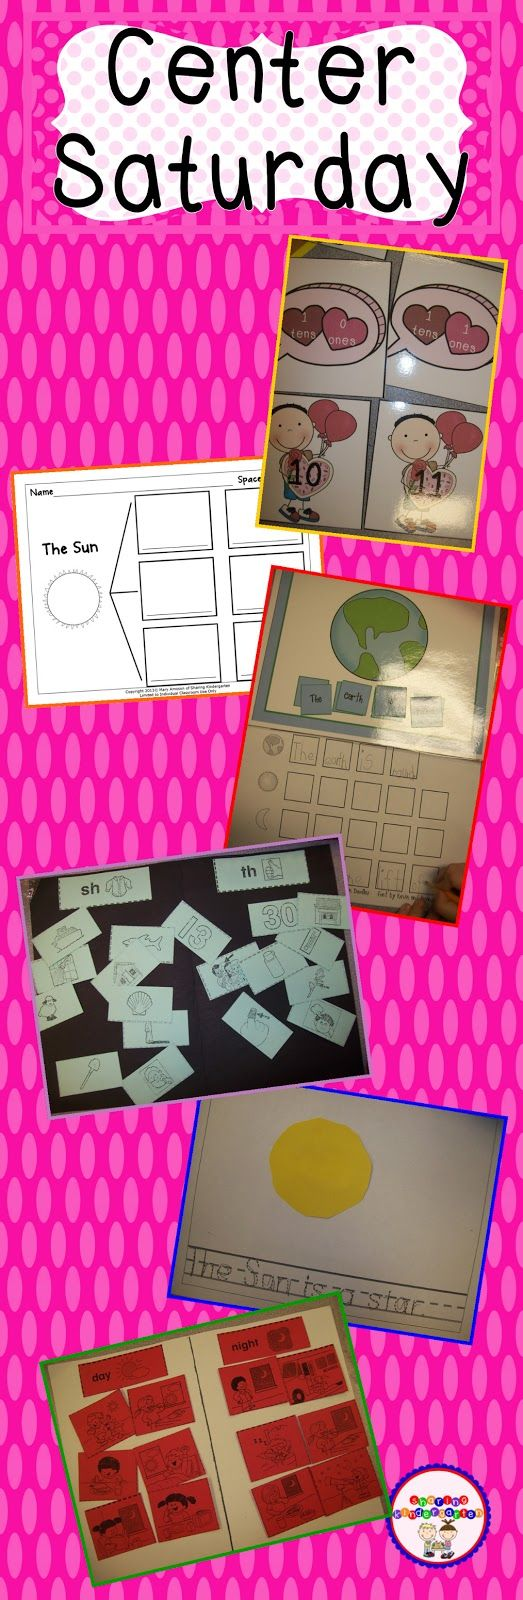 A peek at my weekly word centers. Grab some ideas to make hands on learning FUN for your students.